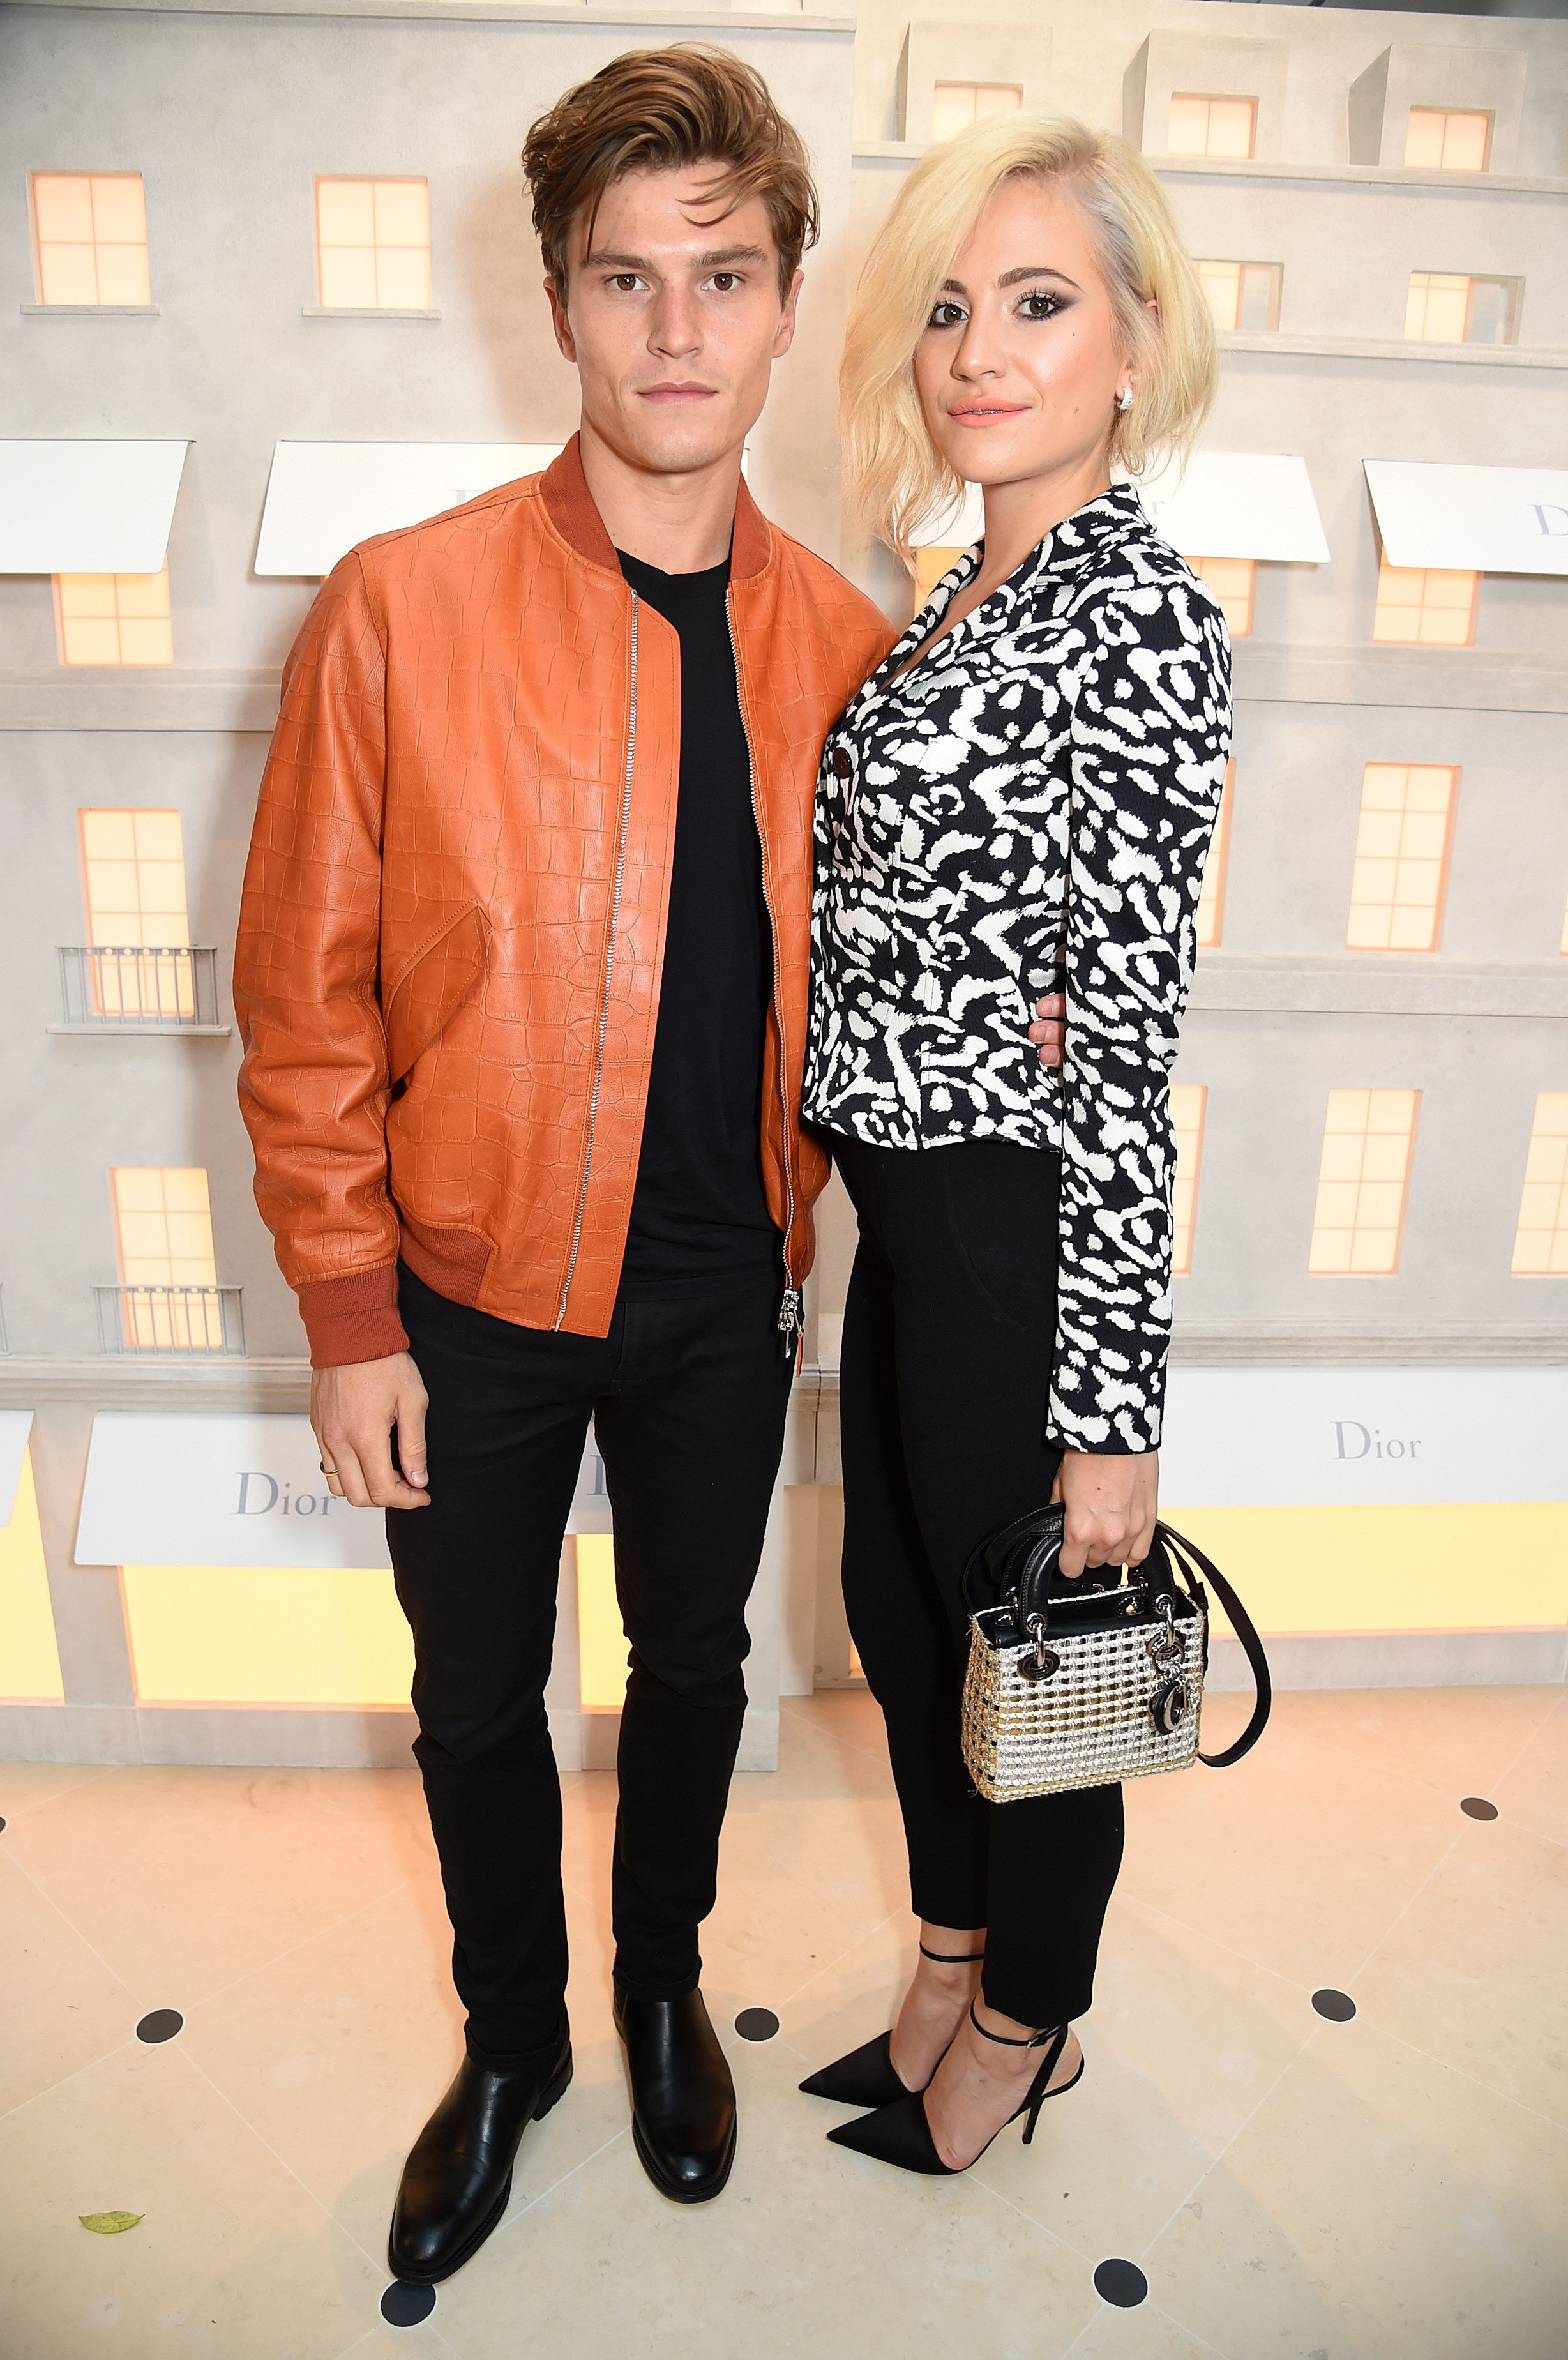 Oliver Cheshire and Pixie Lott house of dior cocktail party london